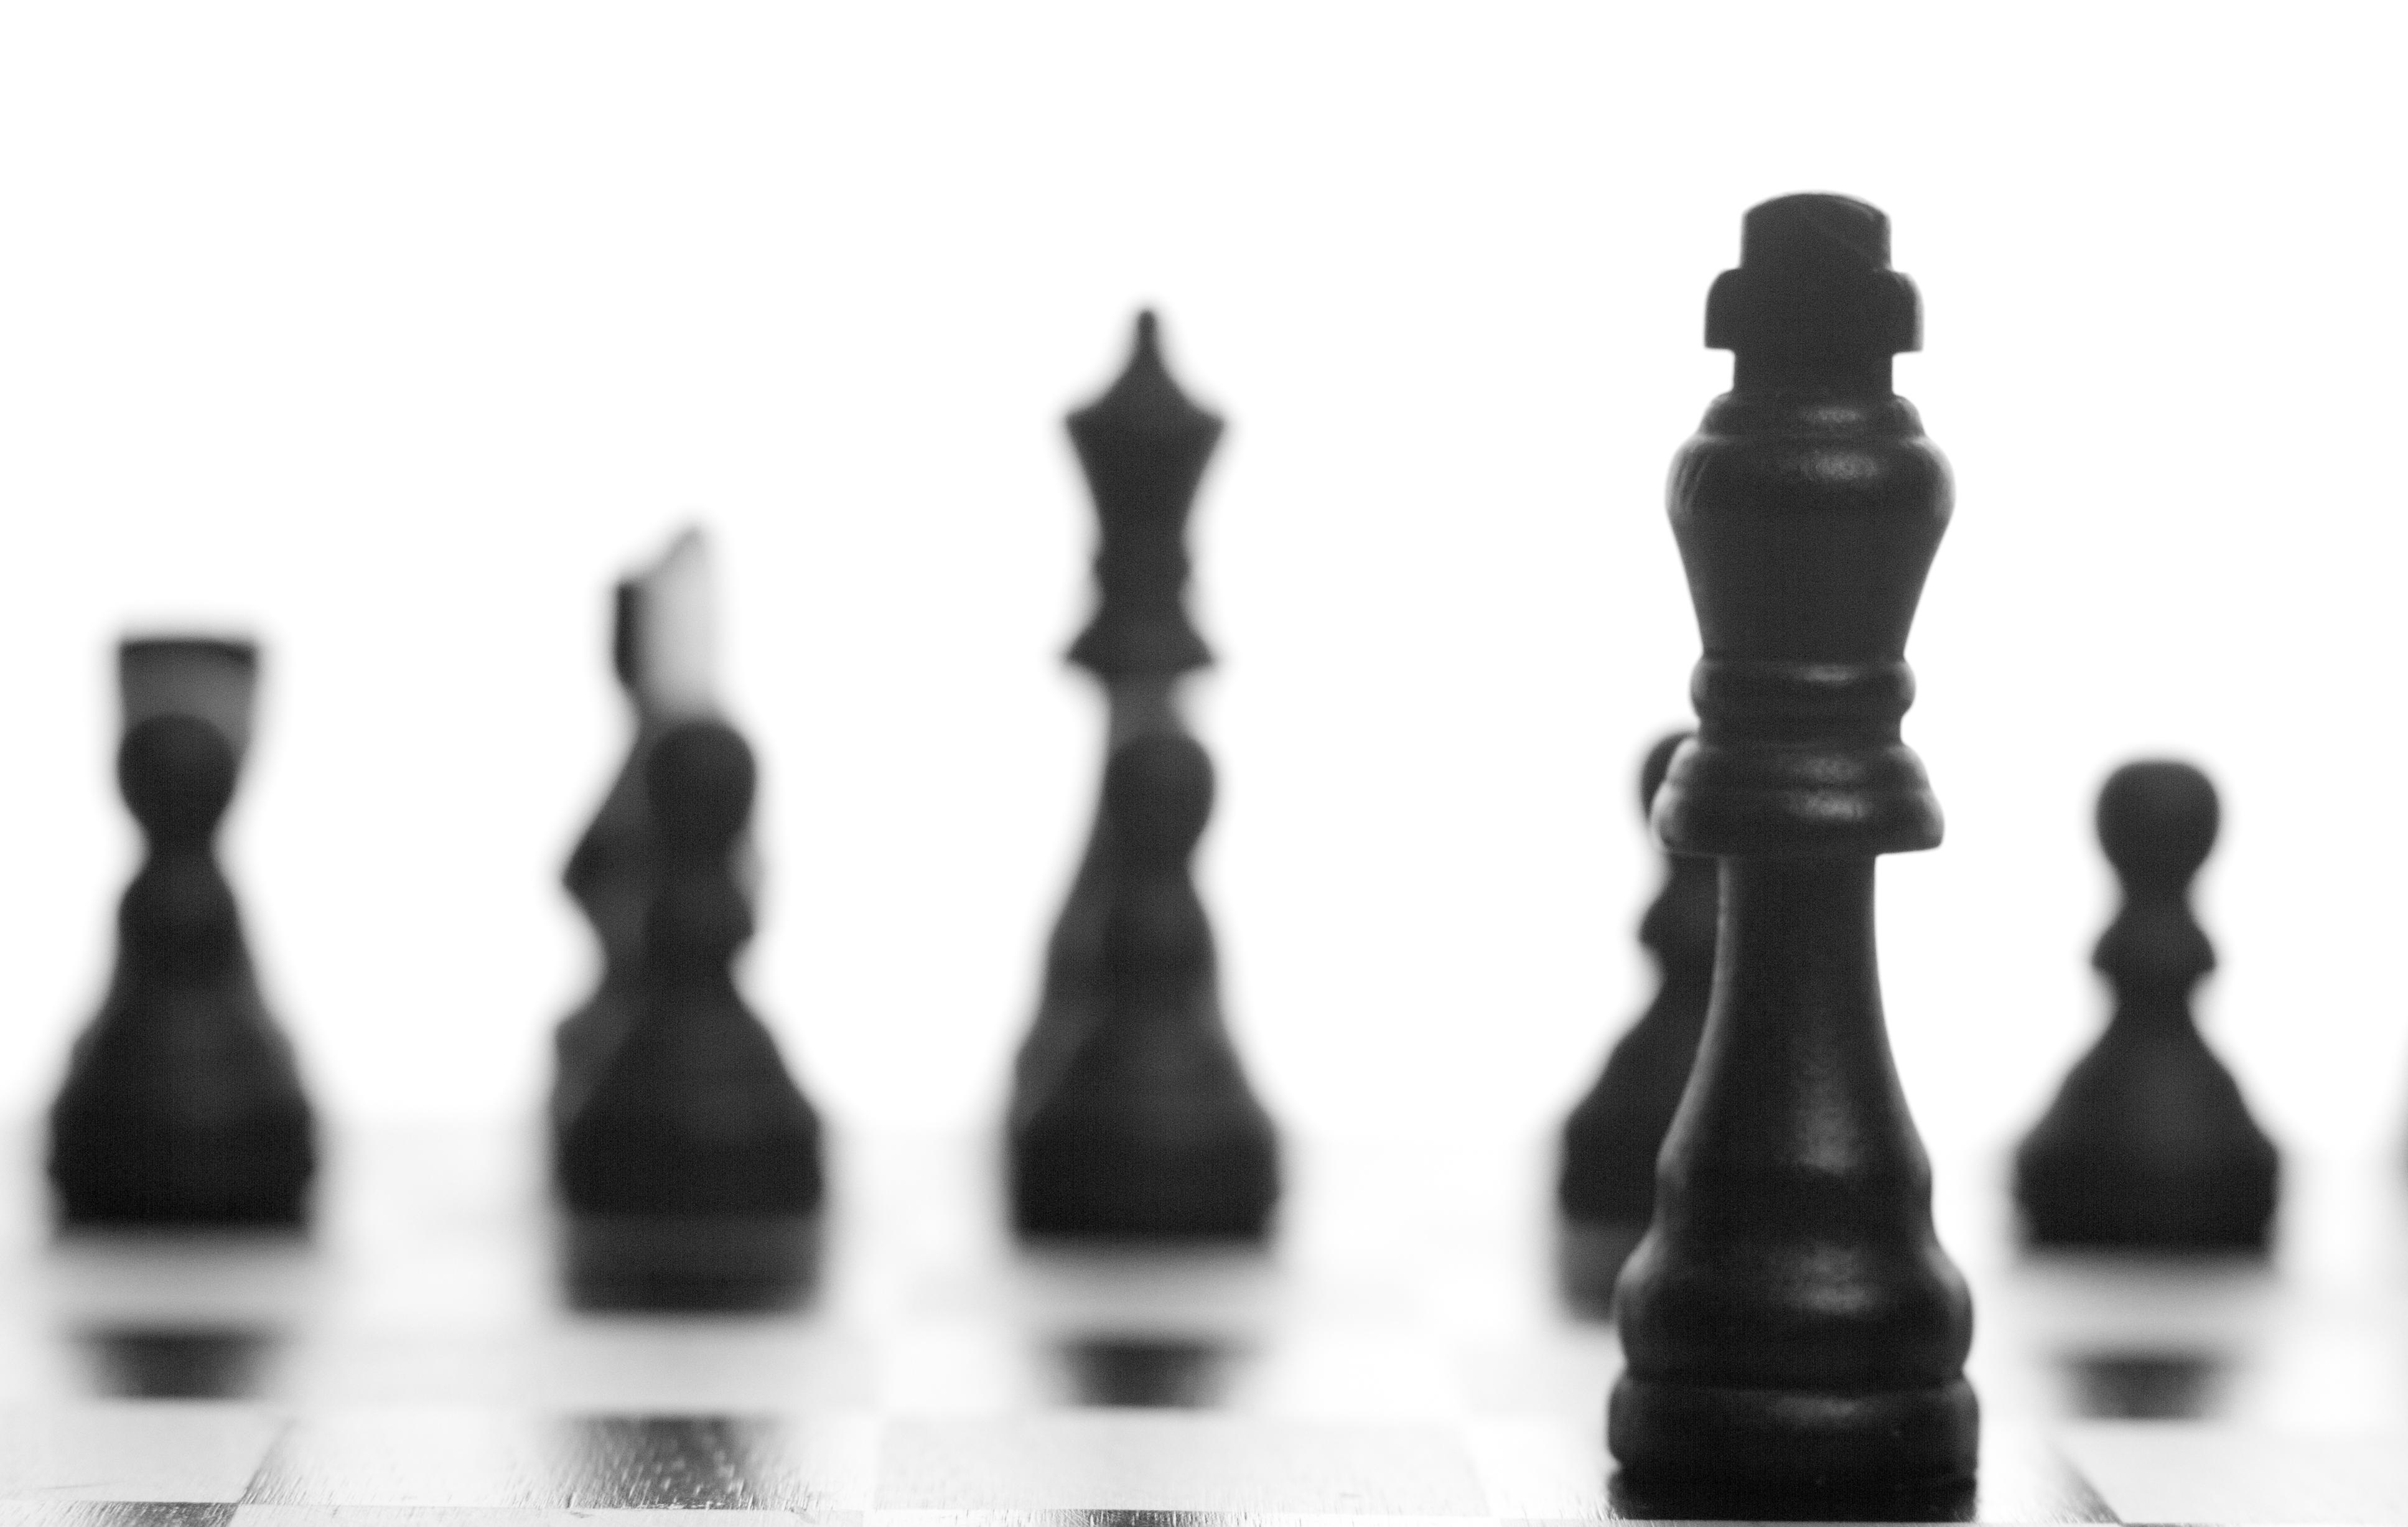 Several black chess pieces are positioned side by side, standing upright.